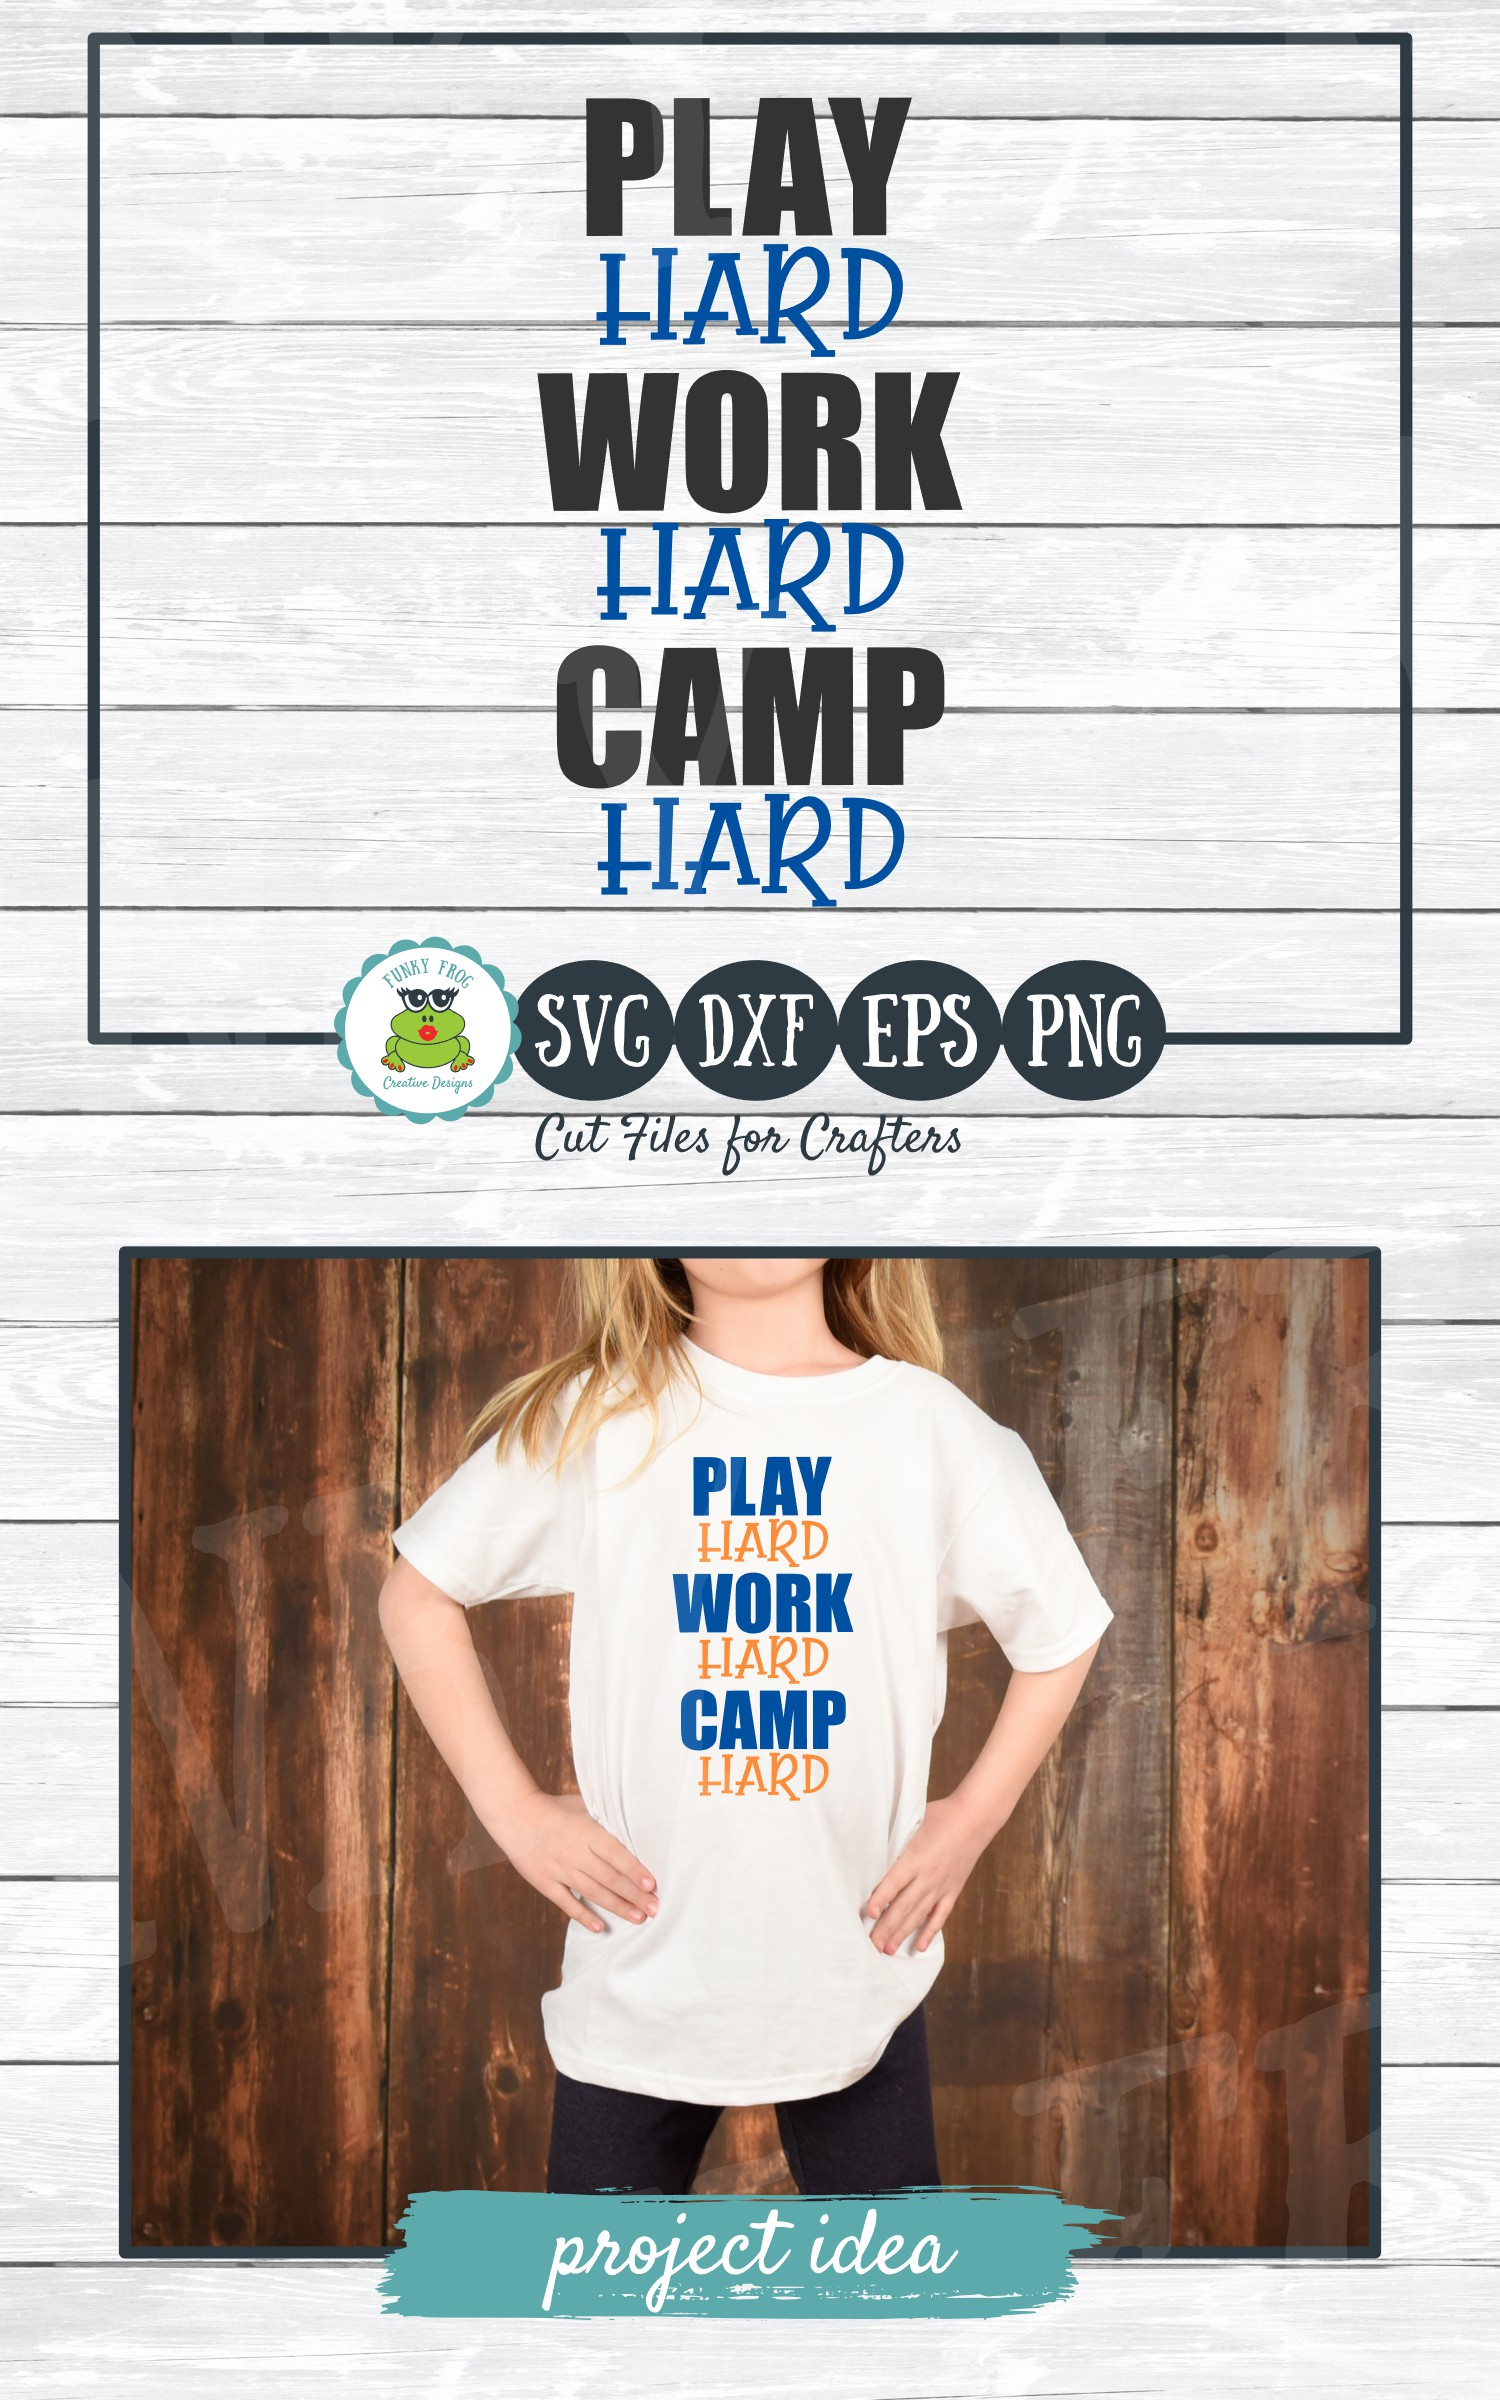 Play Hard Work Hard Camp Hard, SVG Cut File for Crafters example image 4